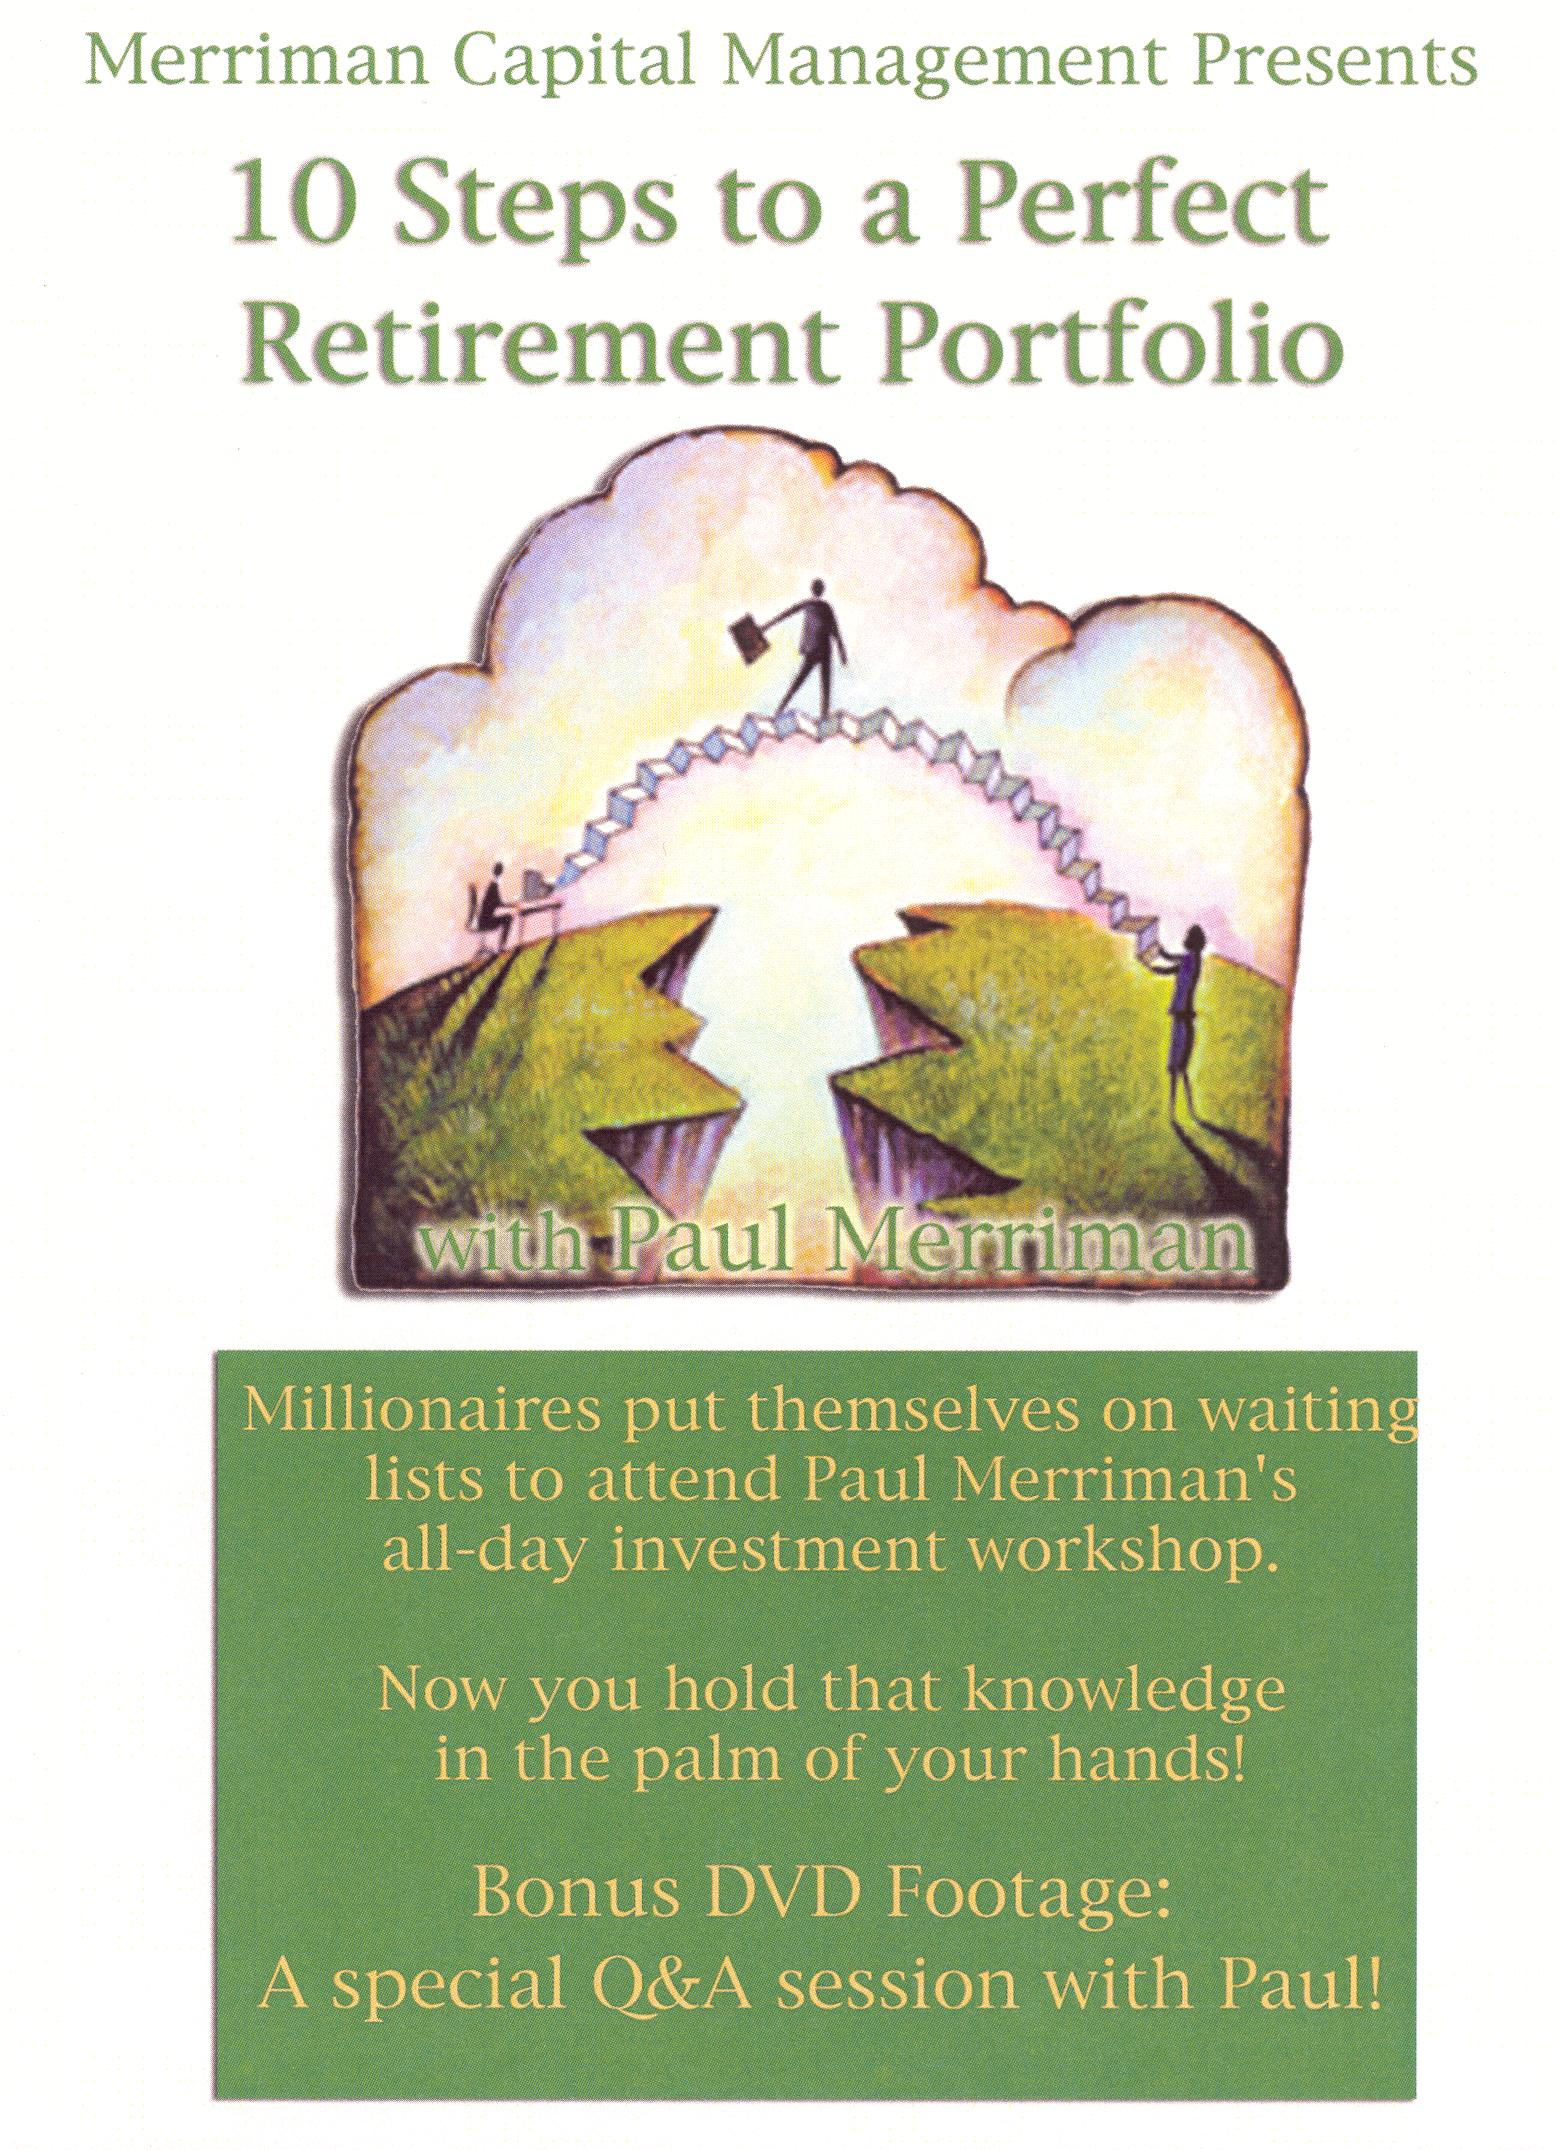 10 Steps to a Perfect Retirement Portfolio